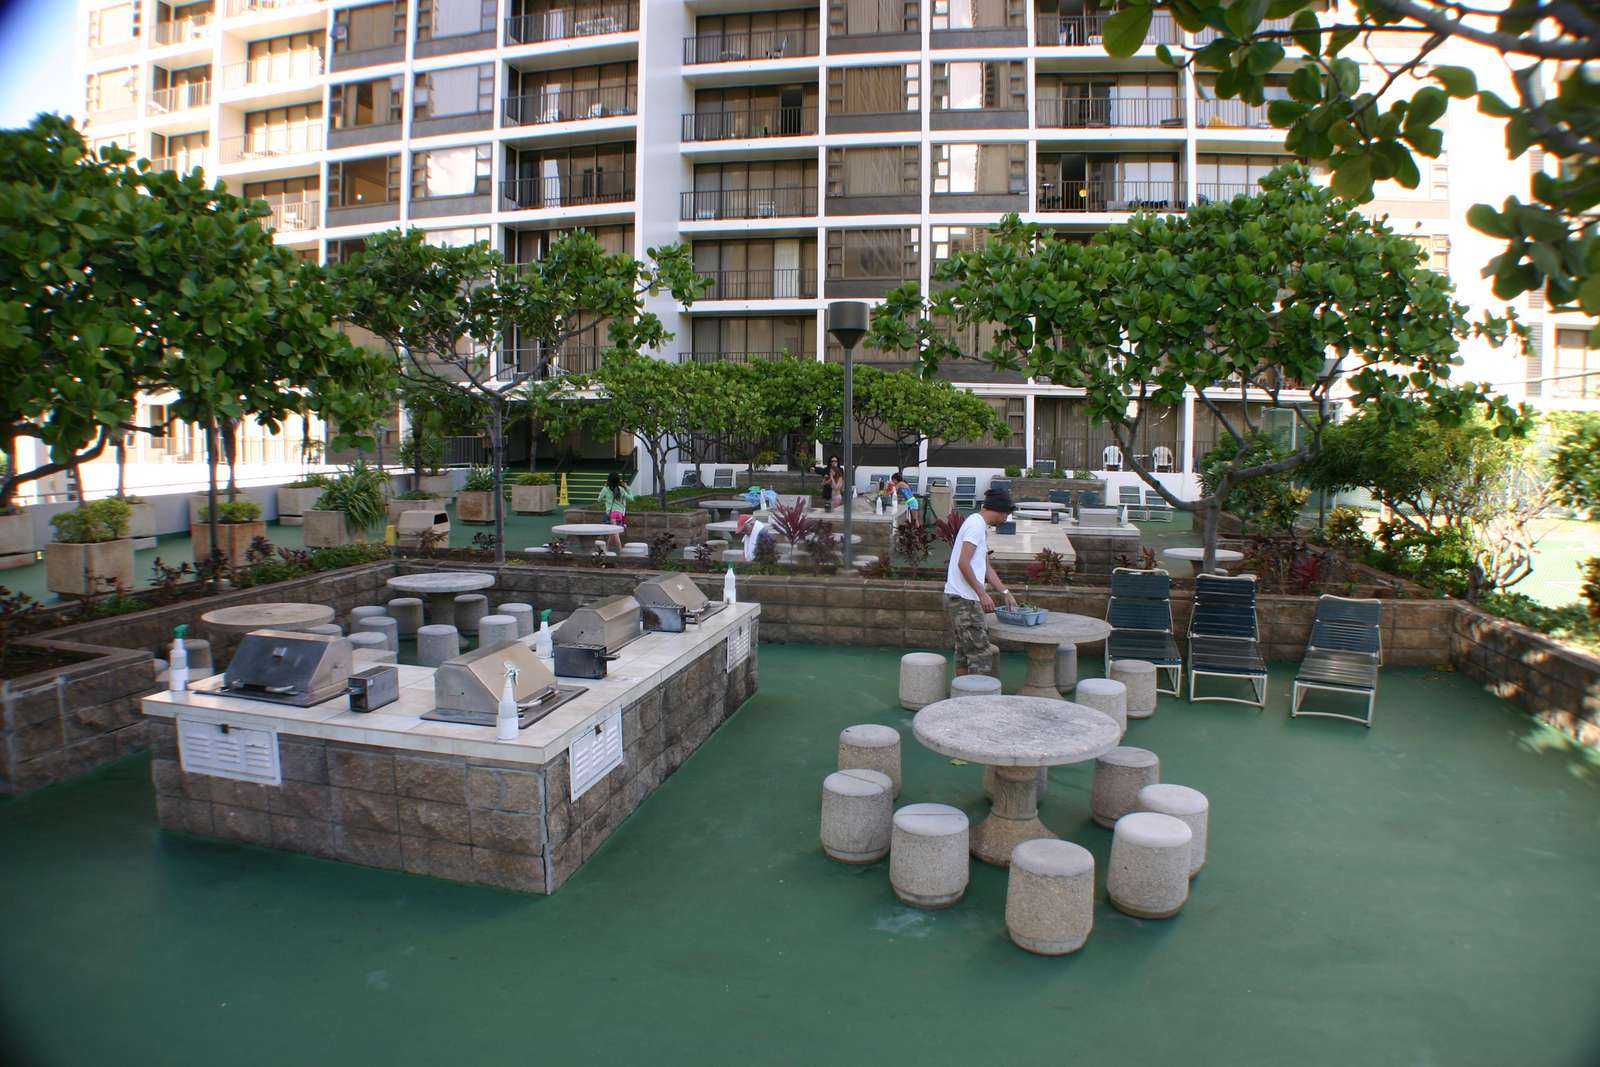 BBQ area on the recreation deck